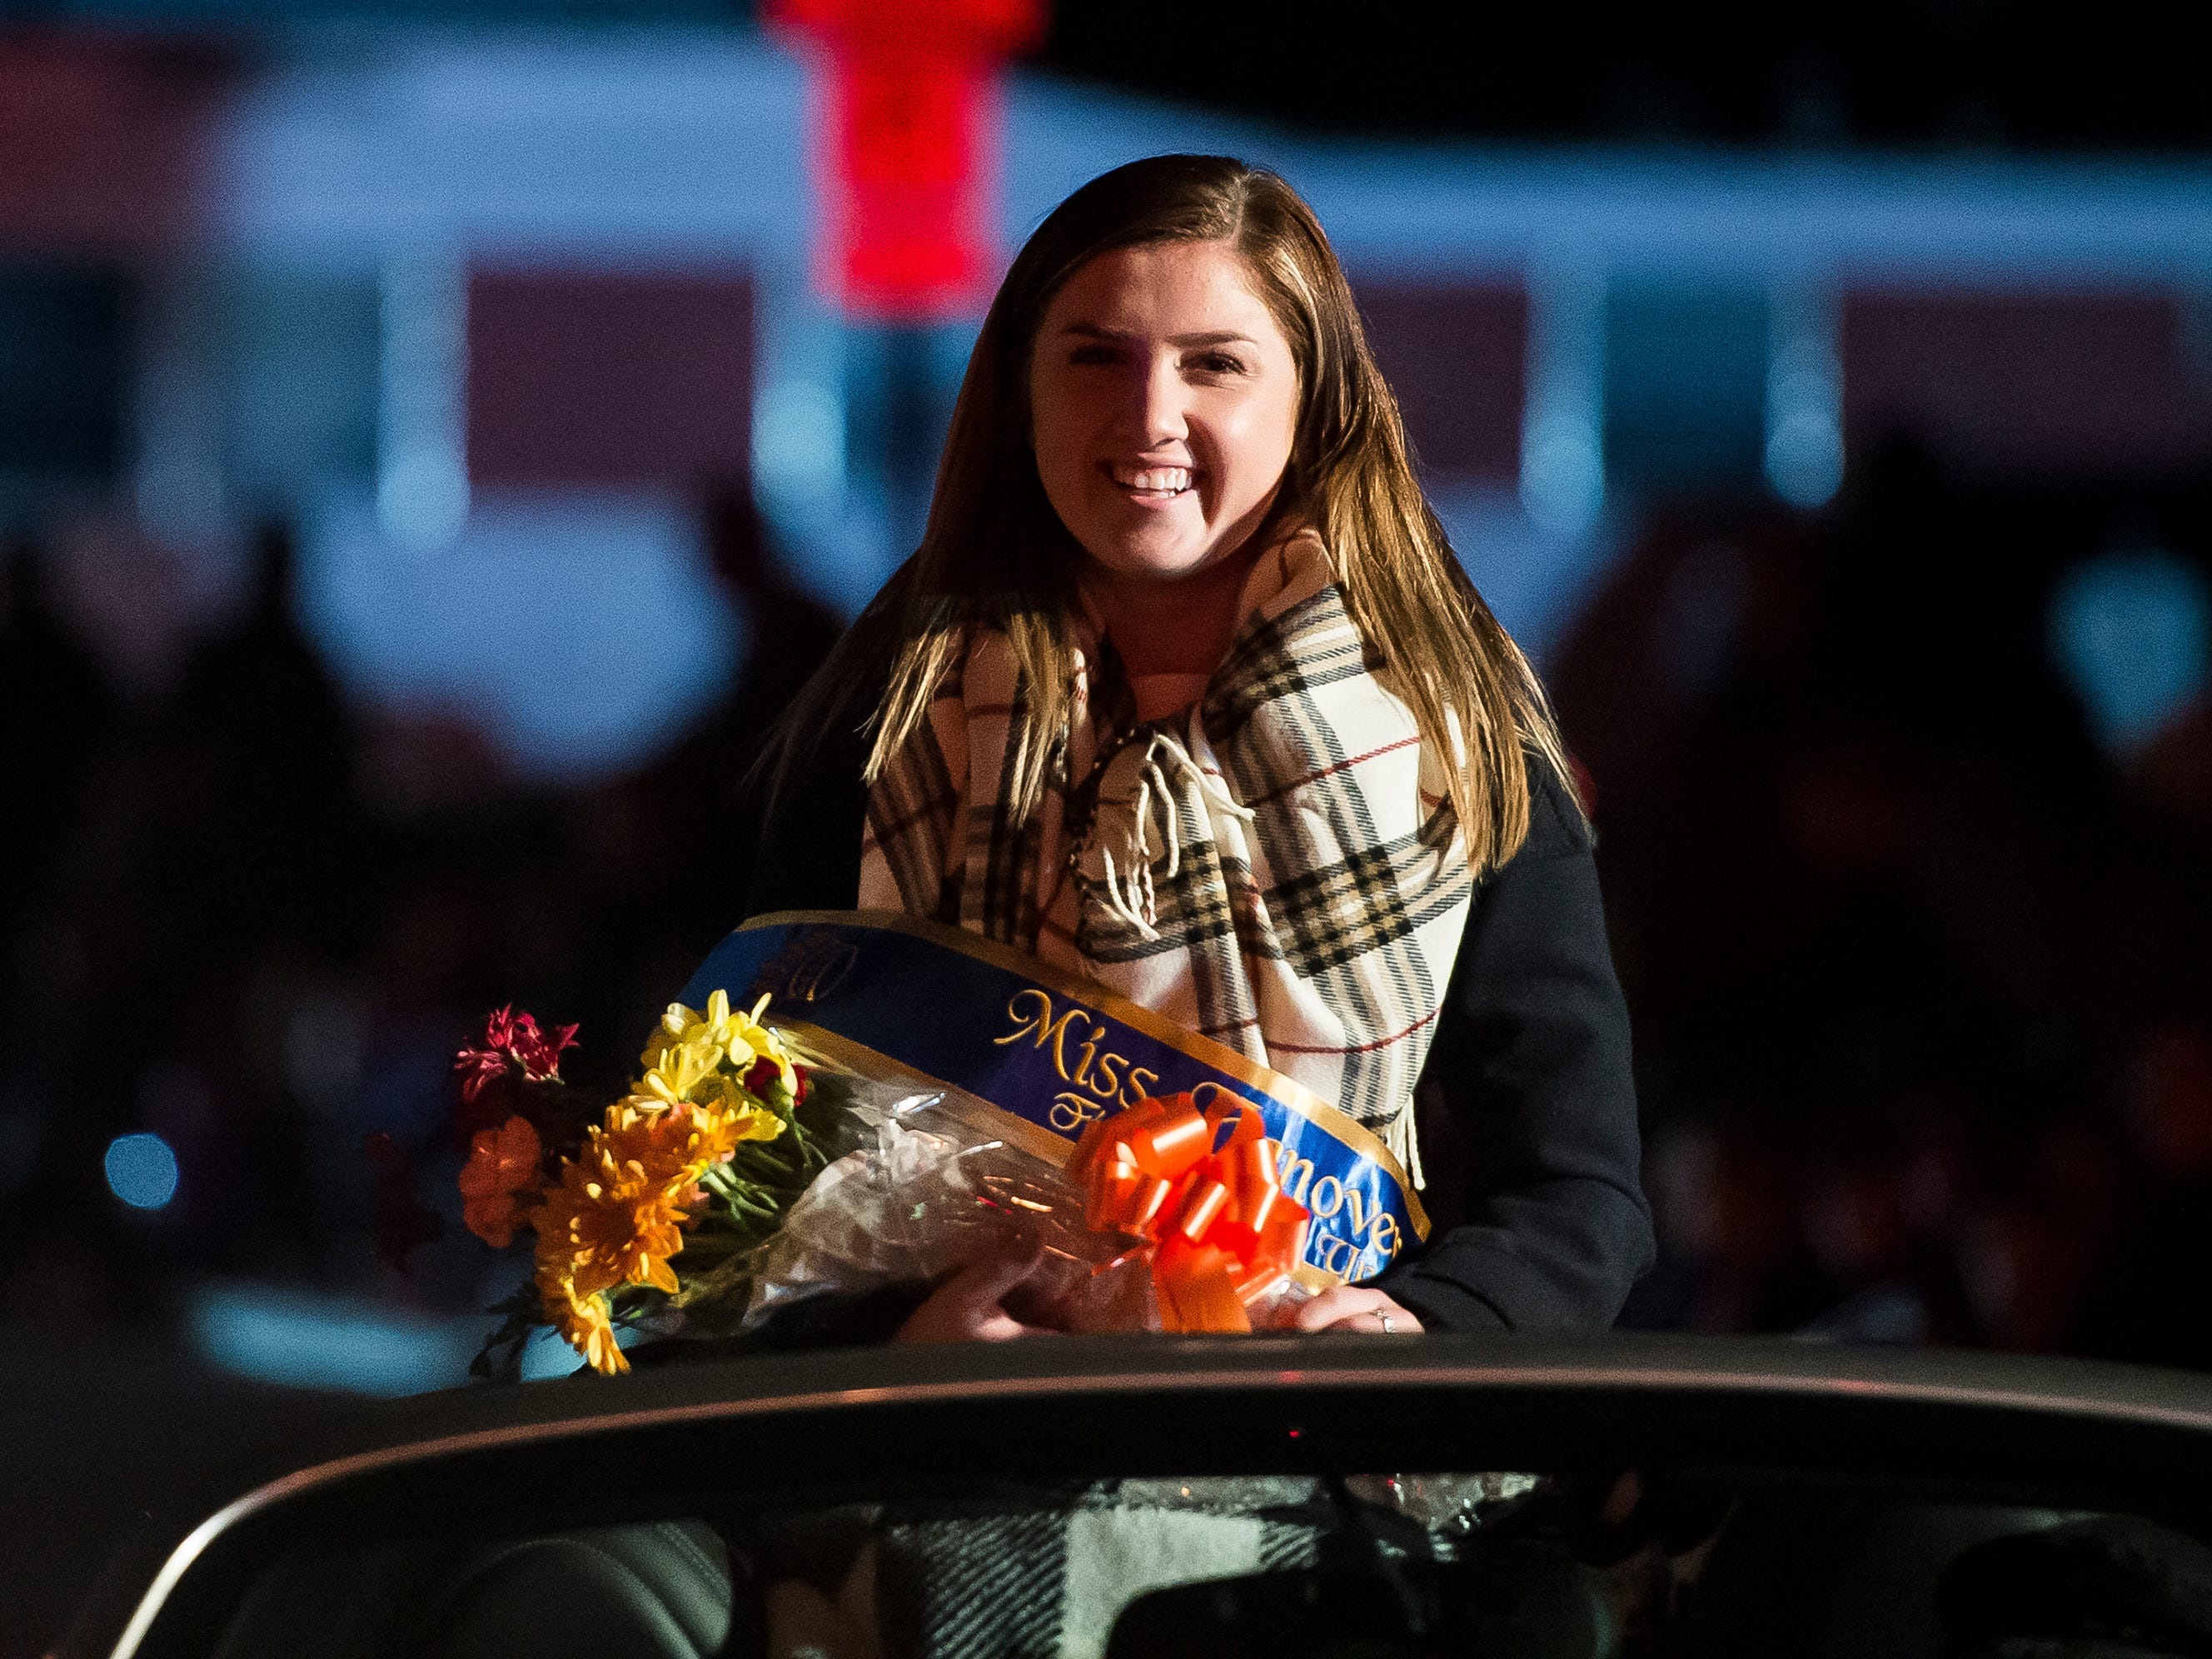 Miss Hanover Area first runner-up, Hannah Nell, rides in a vehicle during the 77th annual Hanover Halloween parade on Thursday, October 25, 2018.